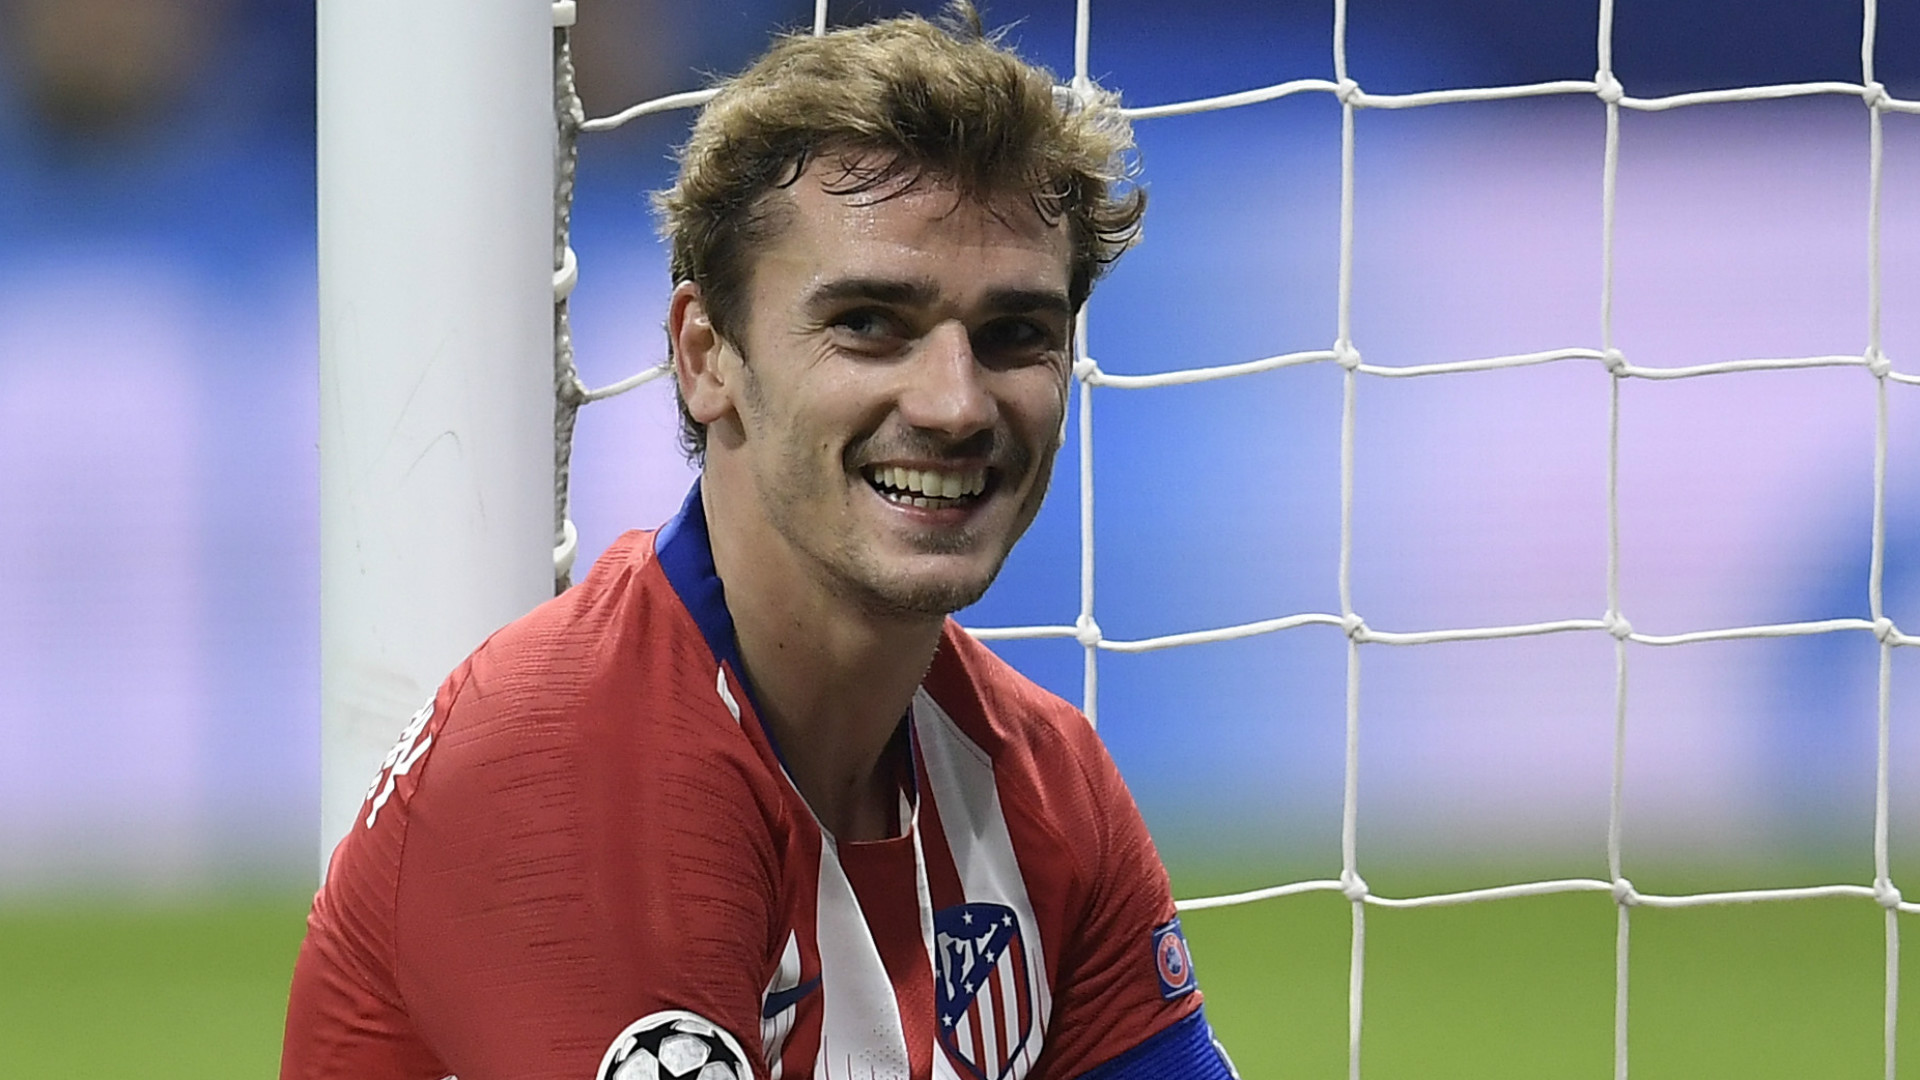 'He's the best in the world' - Rakitic would 'love' Griezmann to join Barcelona